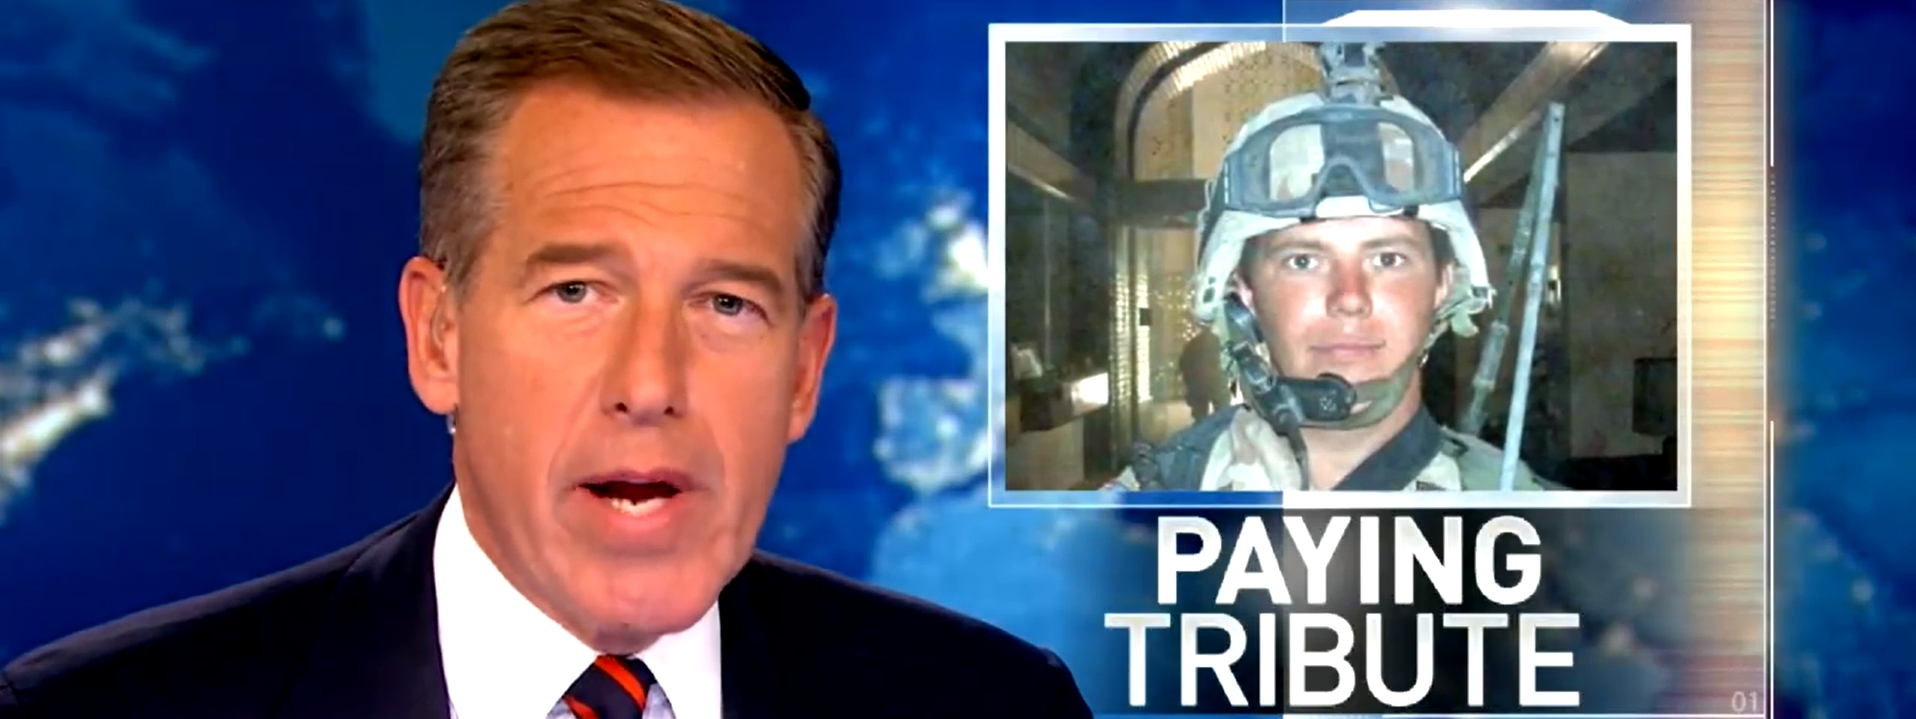 brian williams fake story-2